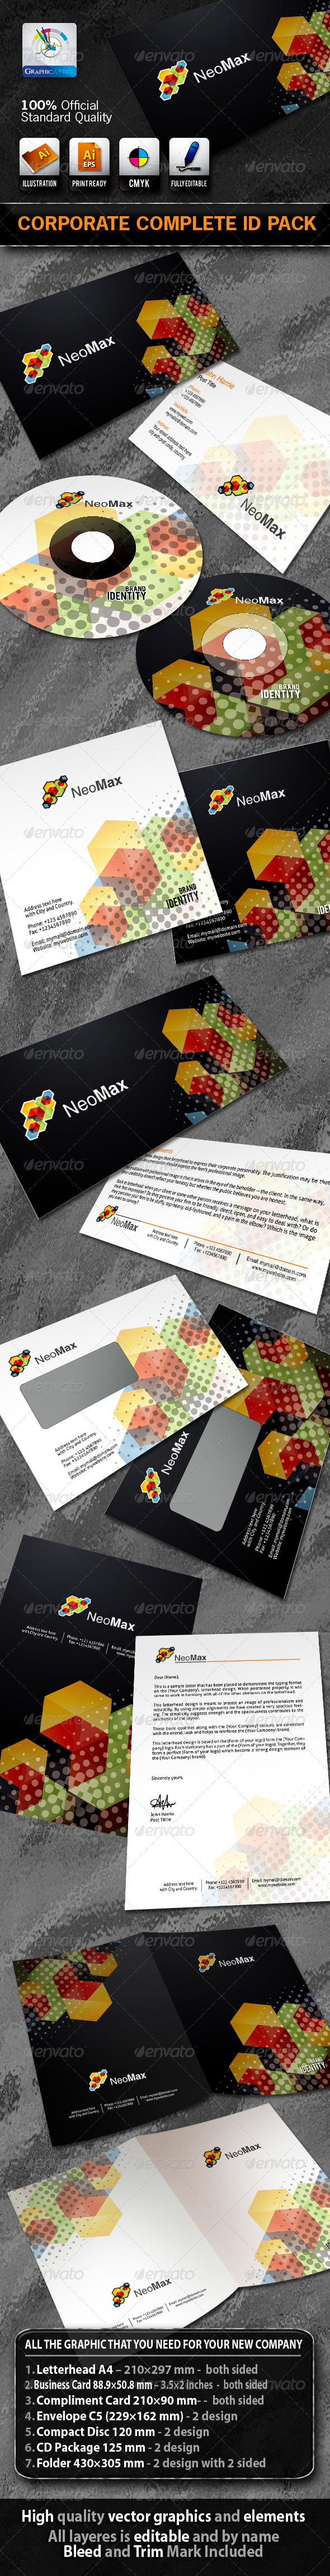 NeoMax Business Corporate ID Pack With Logo - Stationery Print Templates